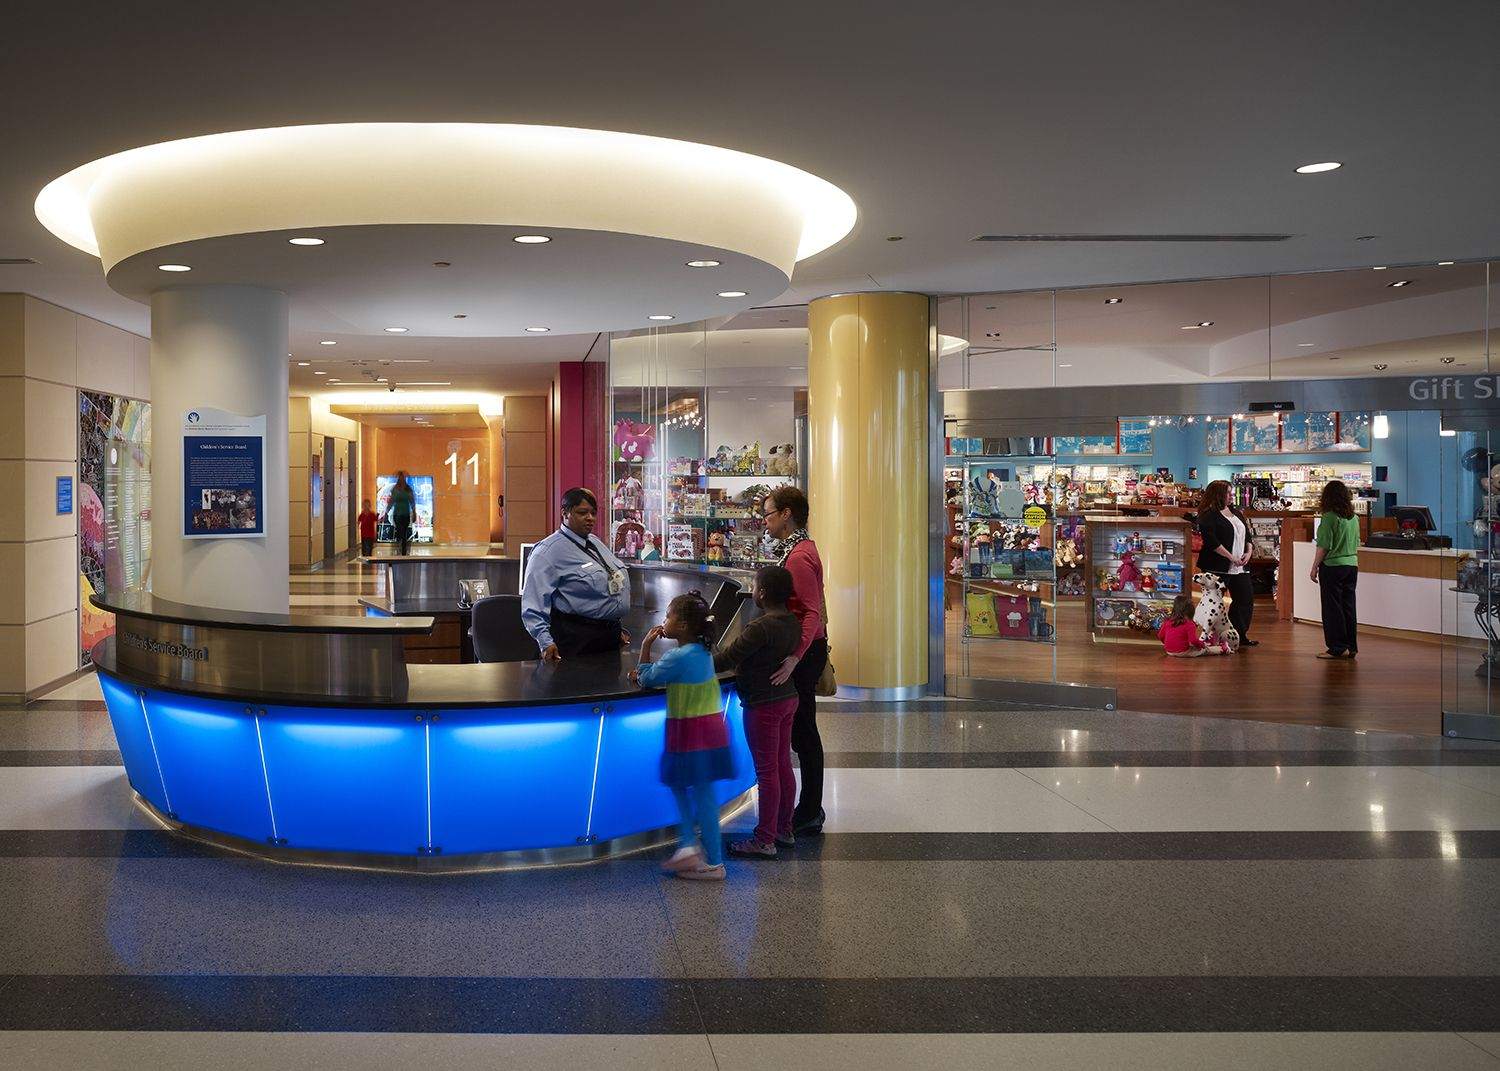 Concierge desk and gift shop at the new Lurie Children's http://tour.luriechildrens.org/